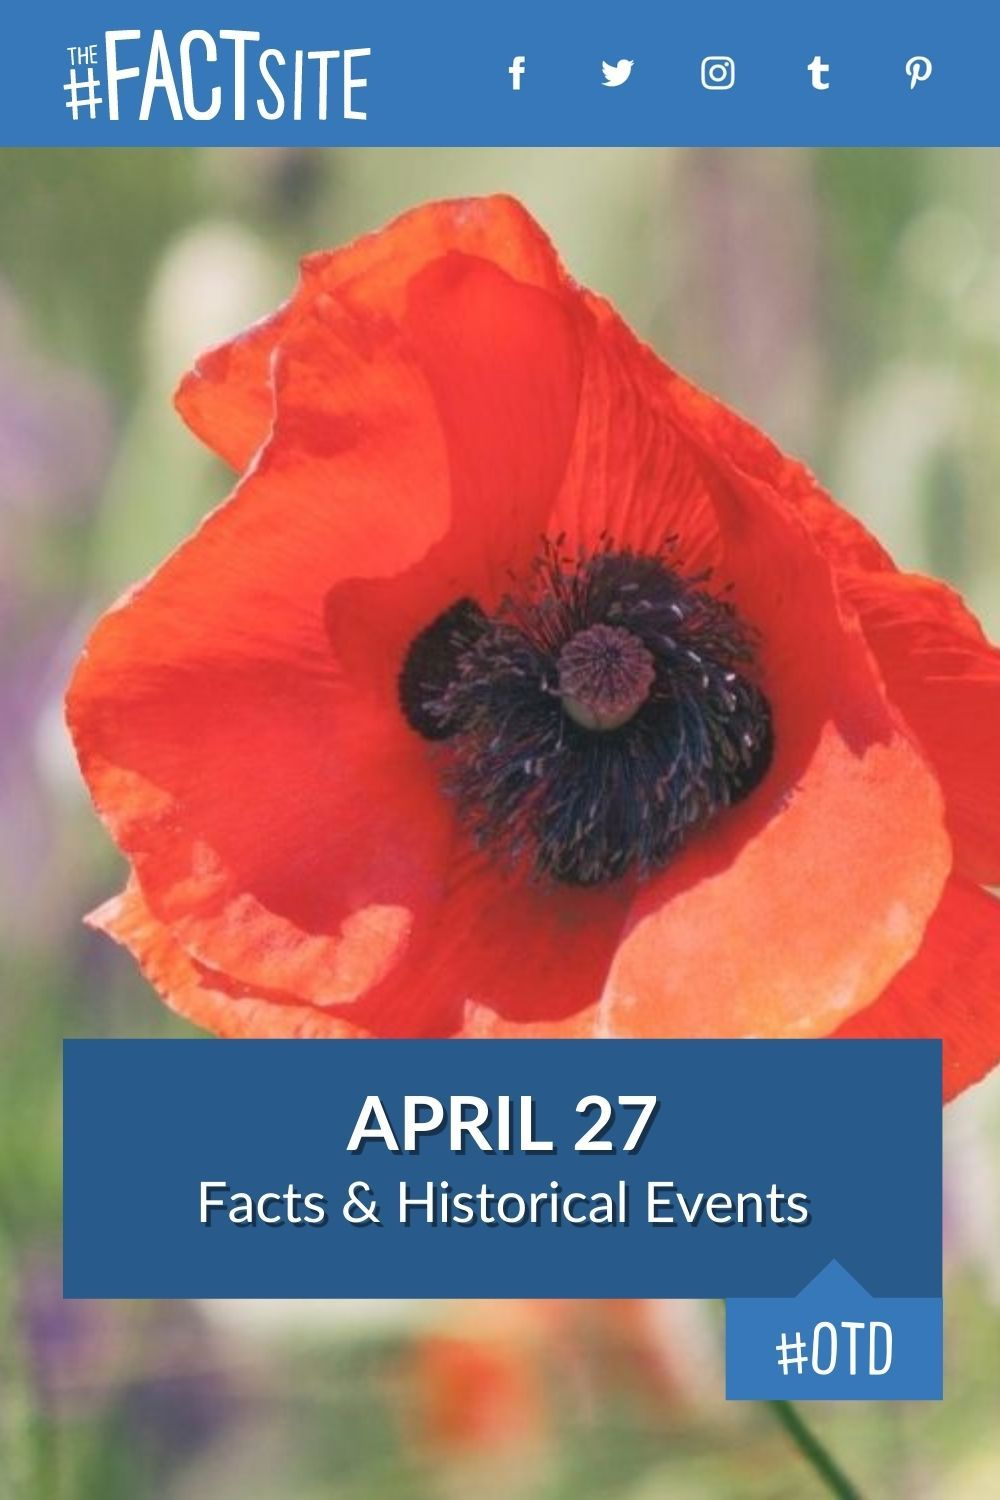 Facts & Historic Events That Happened on April 27